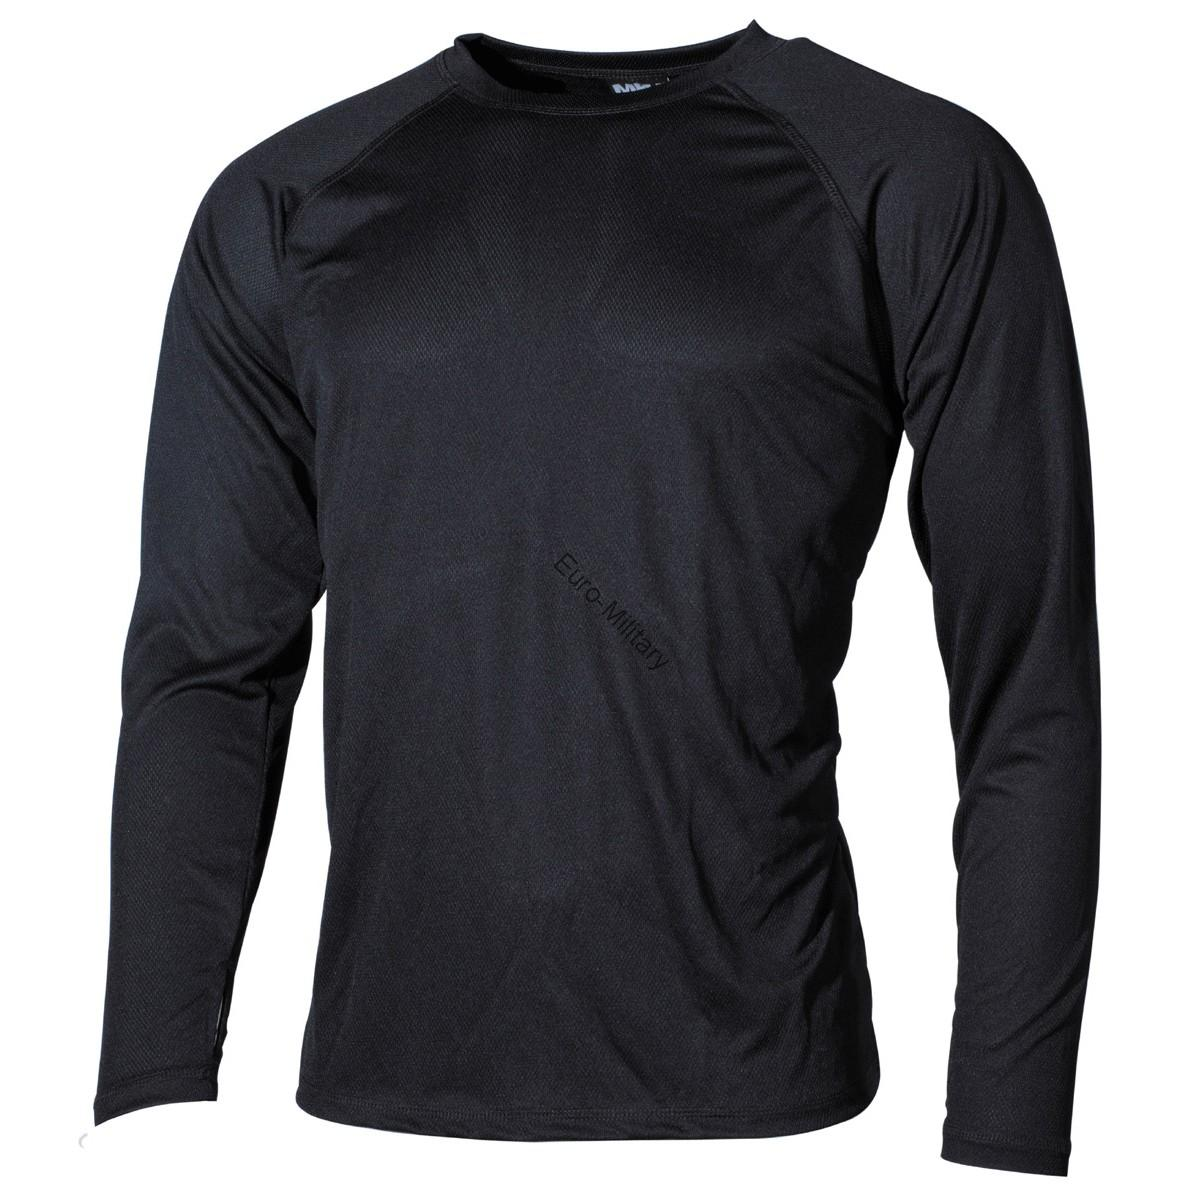 Military/Outdoor Undershirt Level 1 Gen.3 Lightweight and Quick Drying - Black